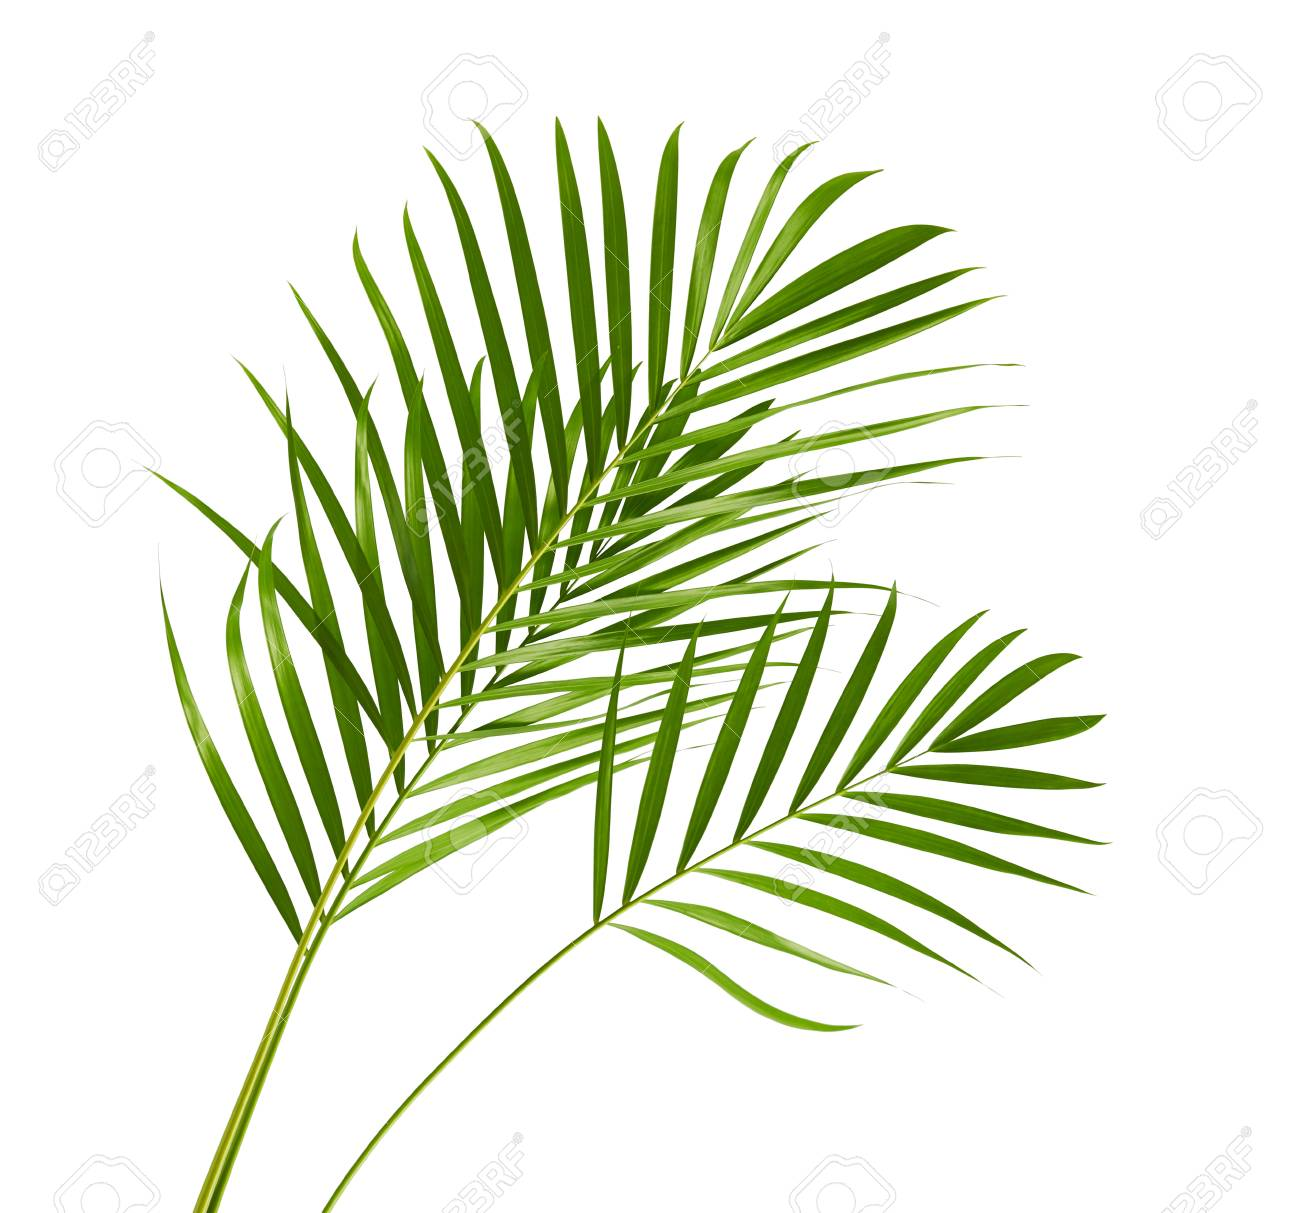 Yellow Palm Leaves Dypsis Lutescens Or Golden Cane Palm Areca Stock Photo Picture And Royalty Free Image Image 103939784